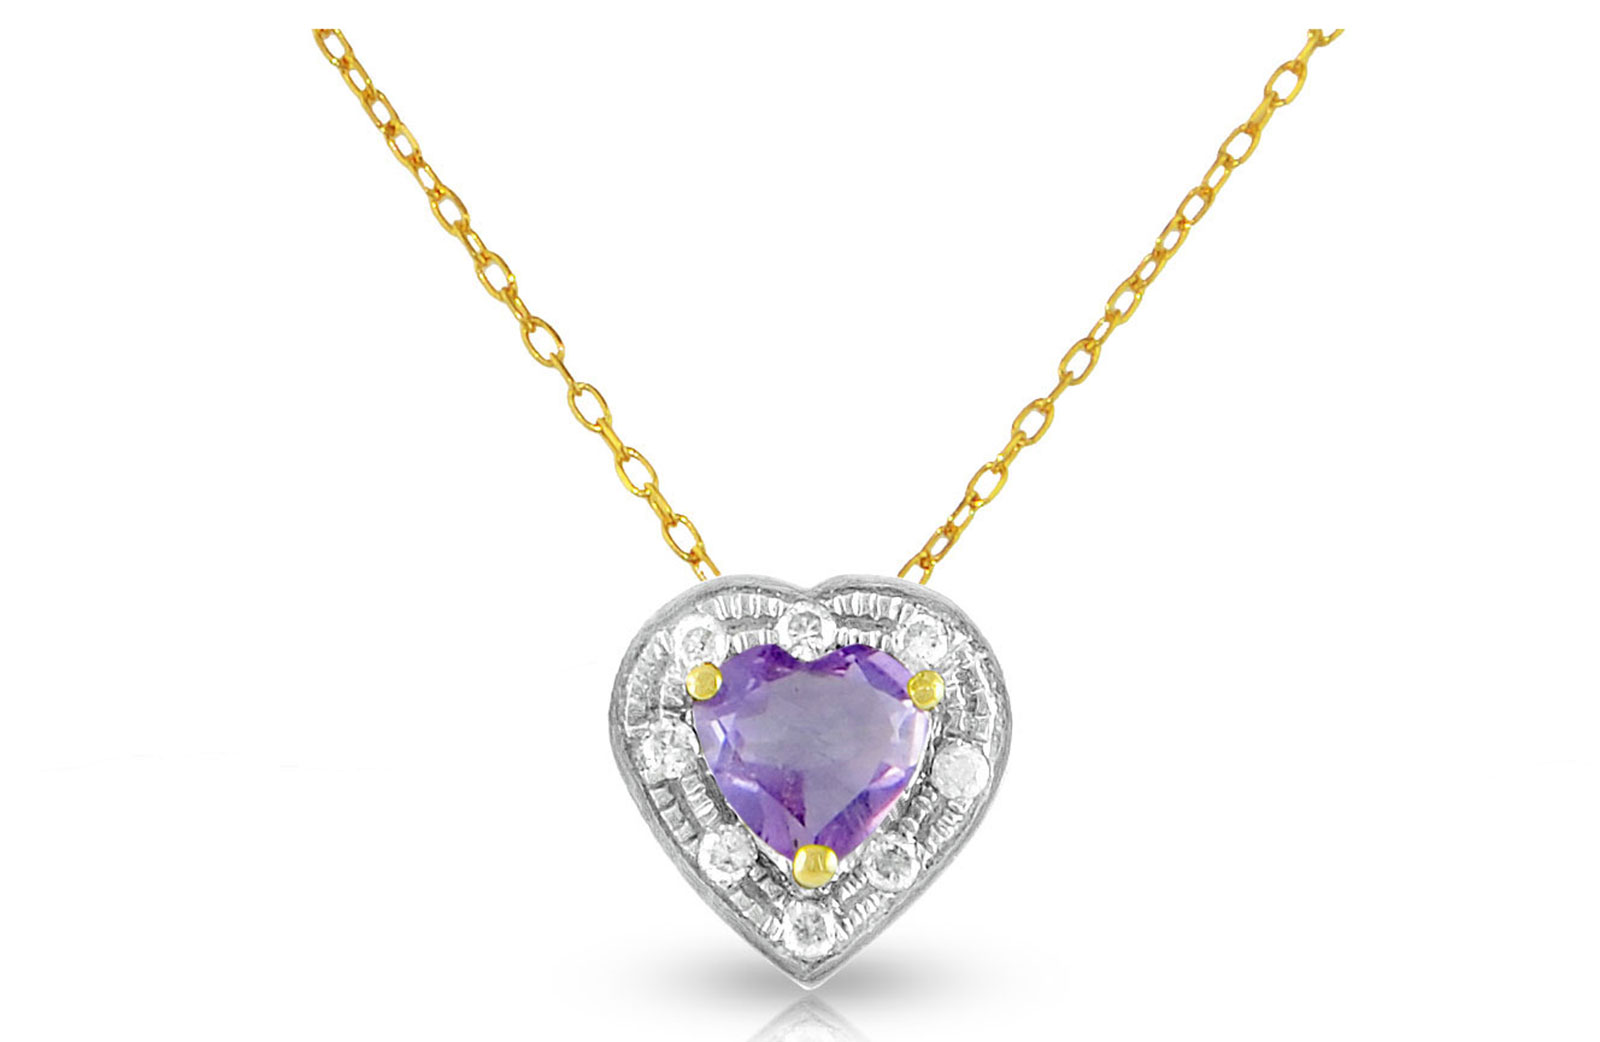 Vera Perla 18K Solid Gold and 0.08Cts Diamonds and 5mm Genuine Amethyst Heart Necklace